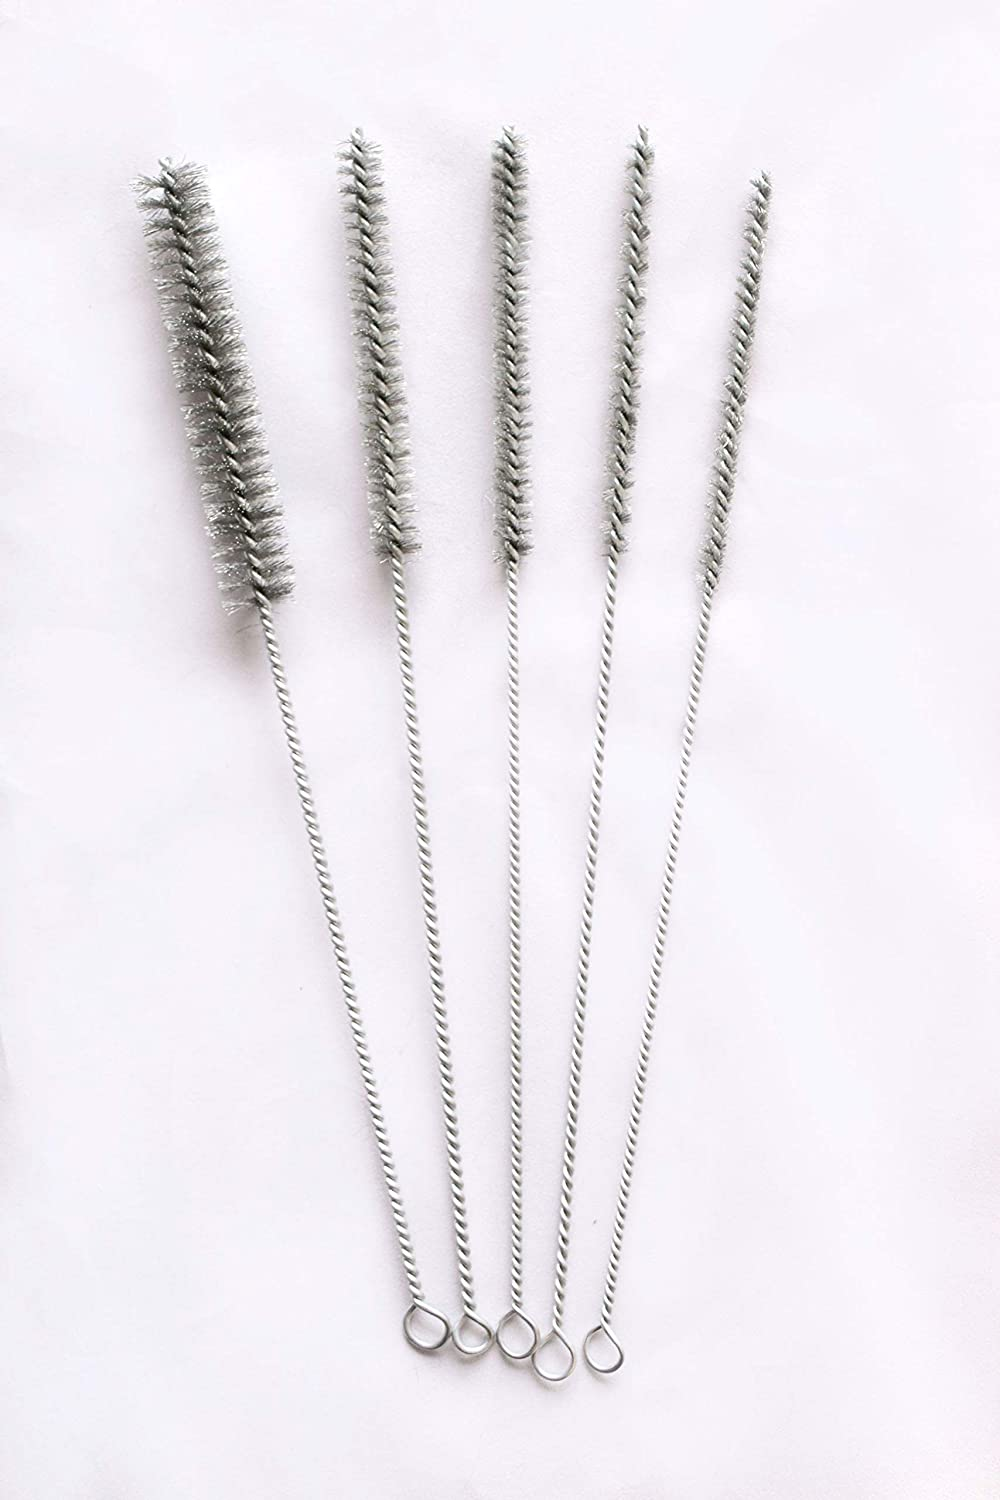 Nylon Stainless Steel Bristle 12 Long Size 1//4 to 3//4 Diameter by PMD Products 15pc Tube Bottle Wire Brushes Brass